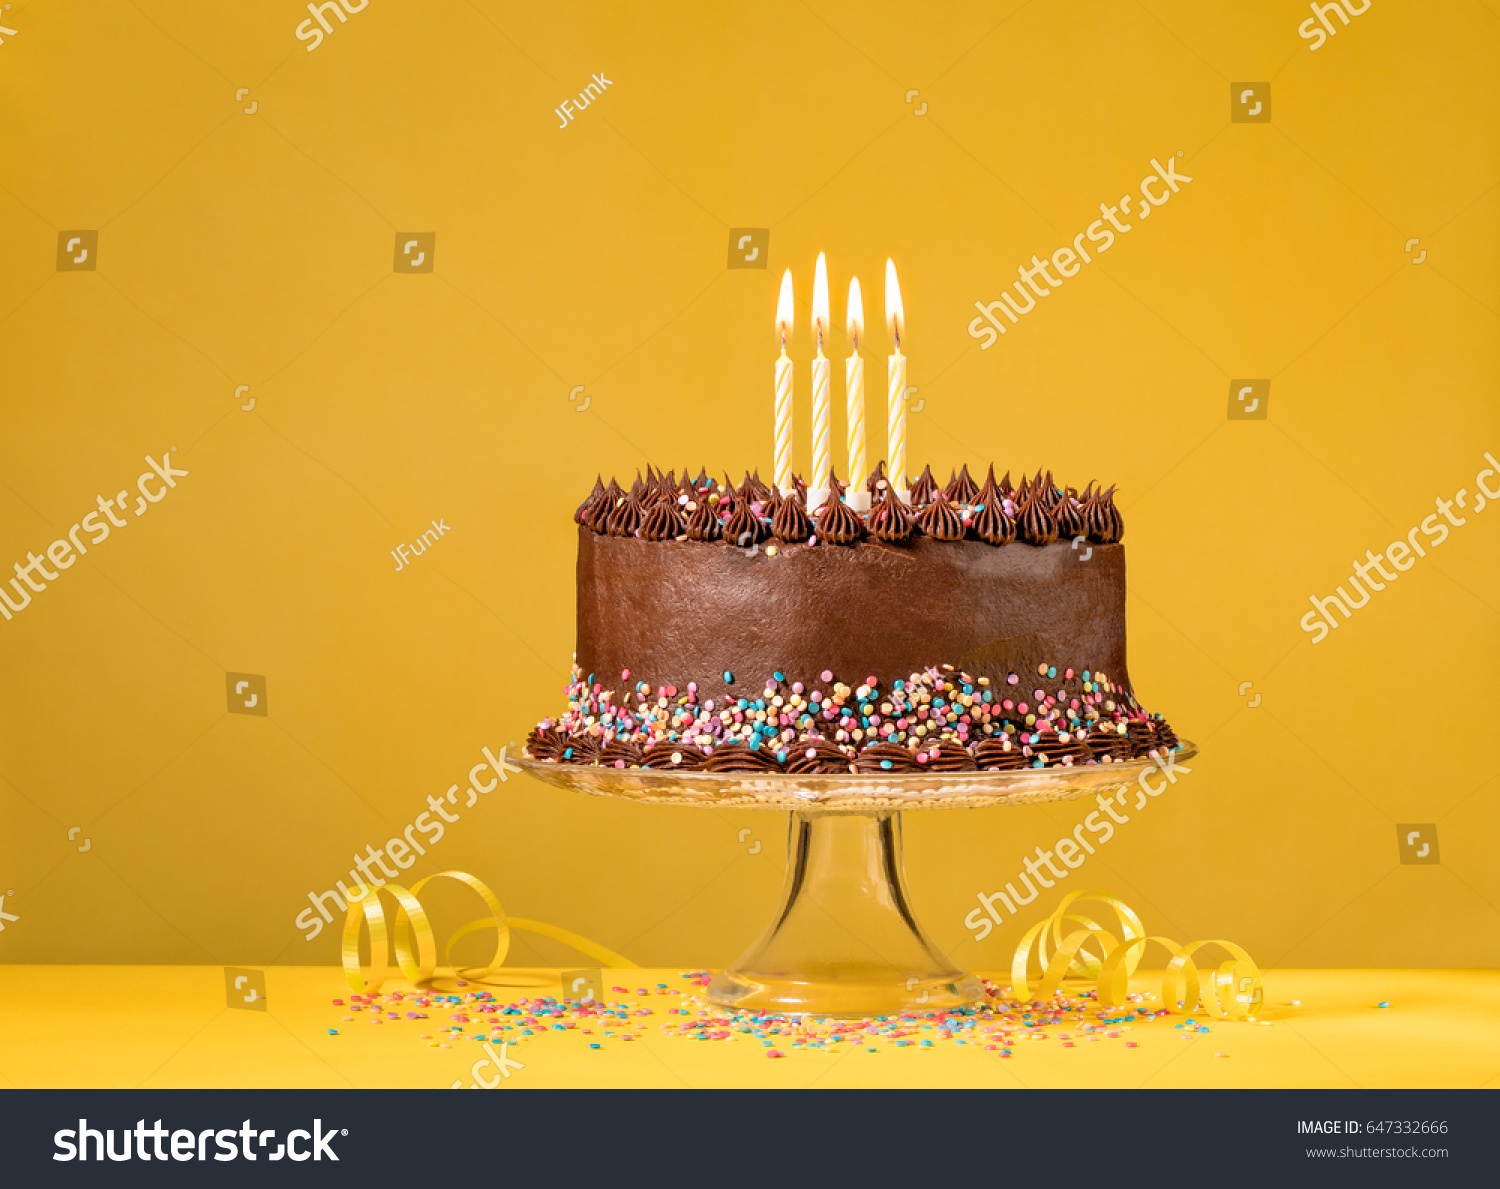 Chocolate Birthday Cake With Sprinkles And Candles Over Yellow Background